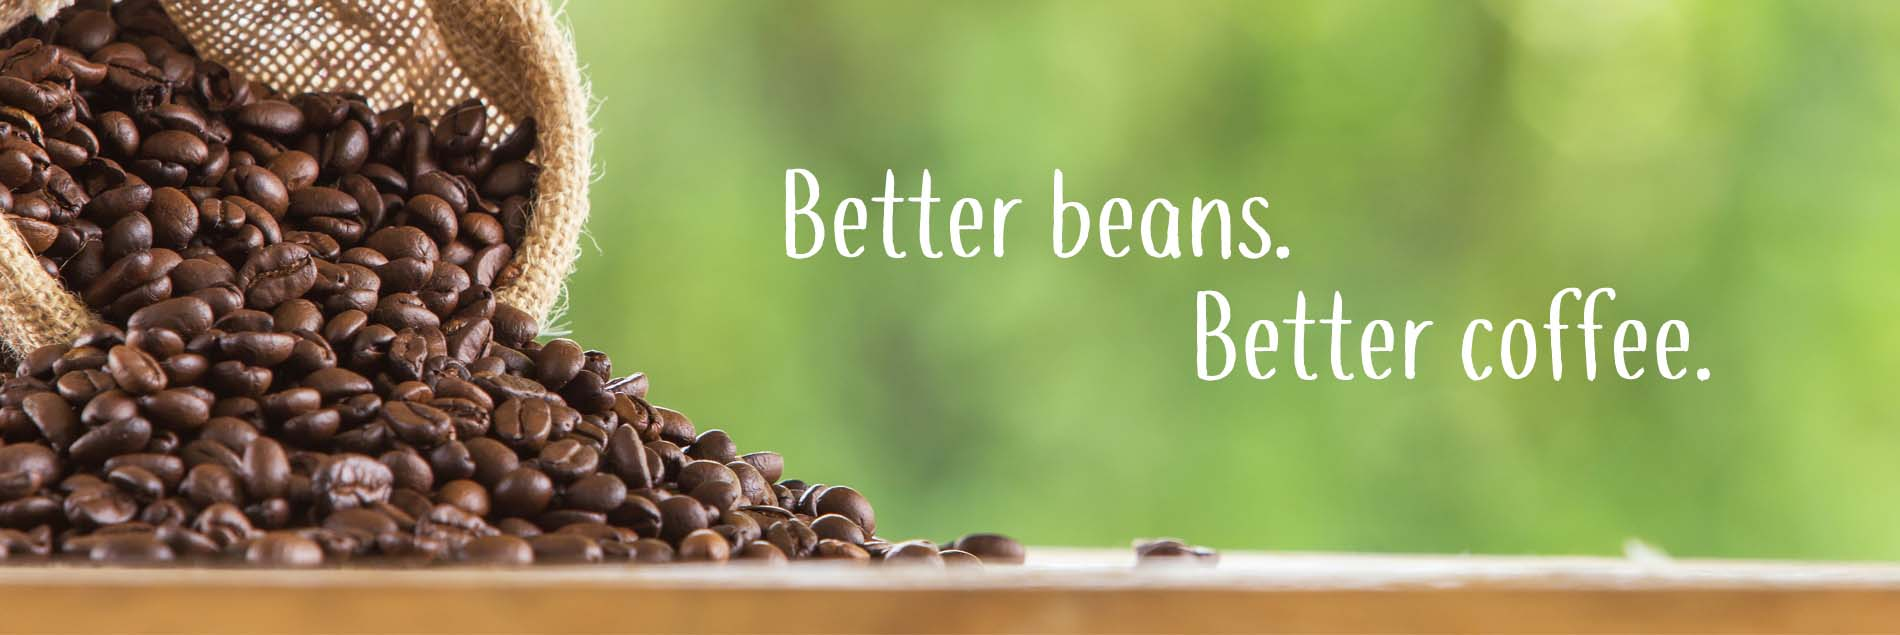 Better beans Better coffee